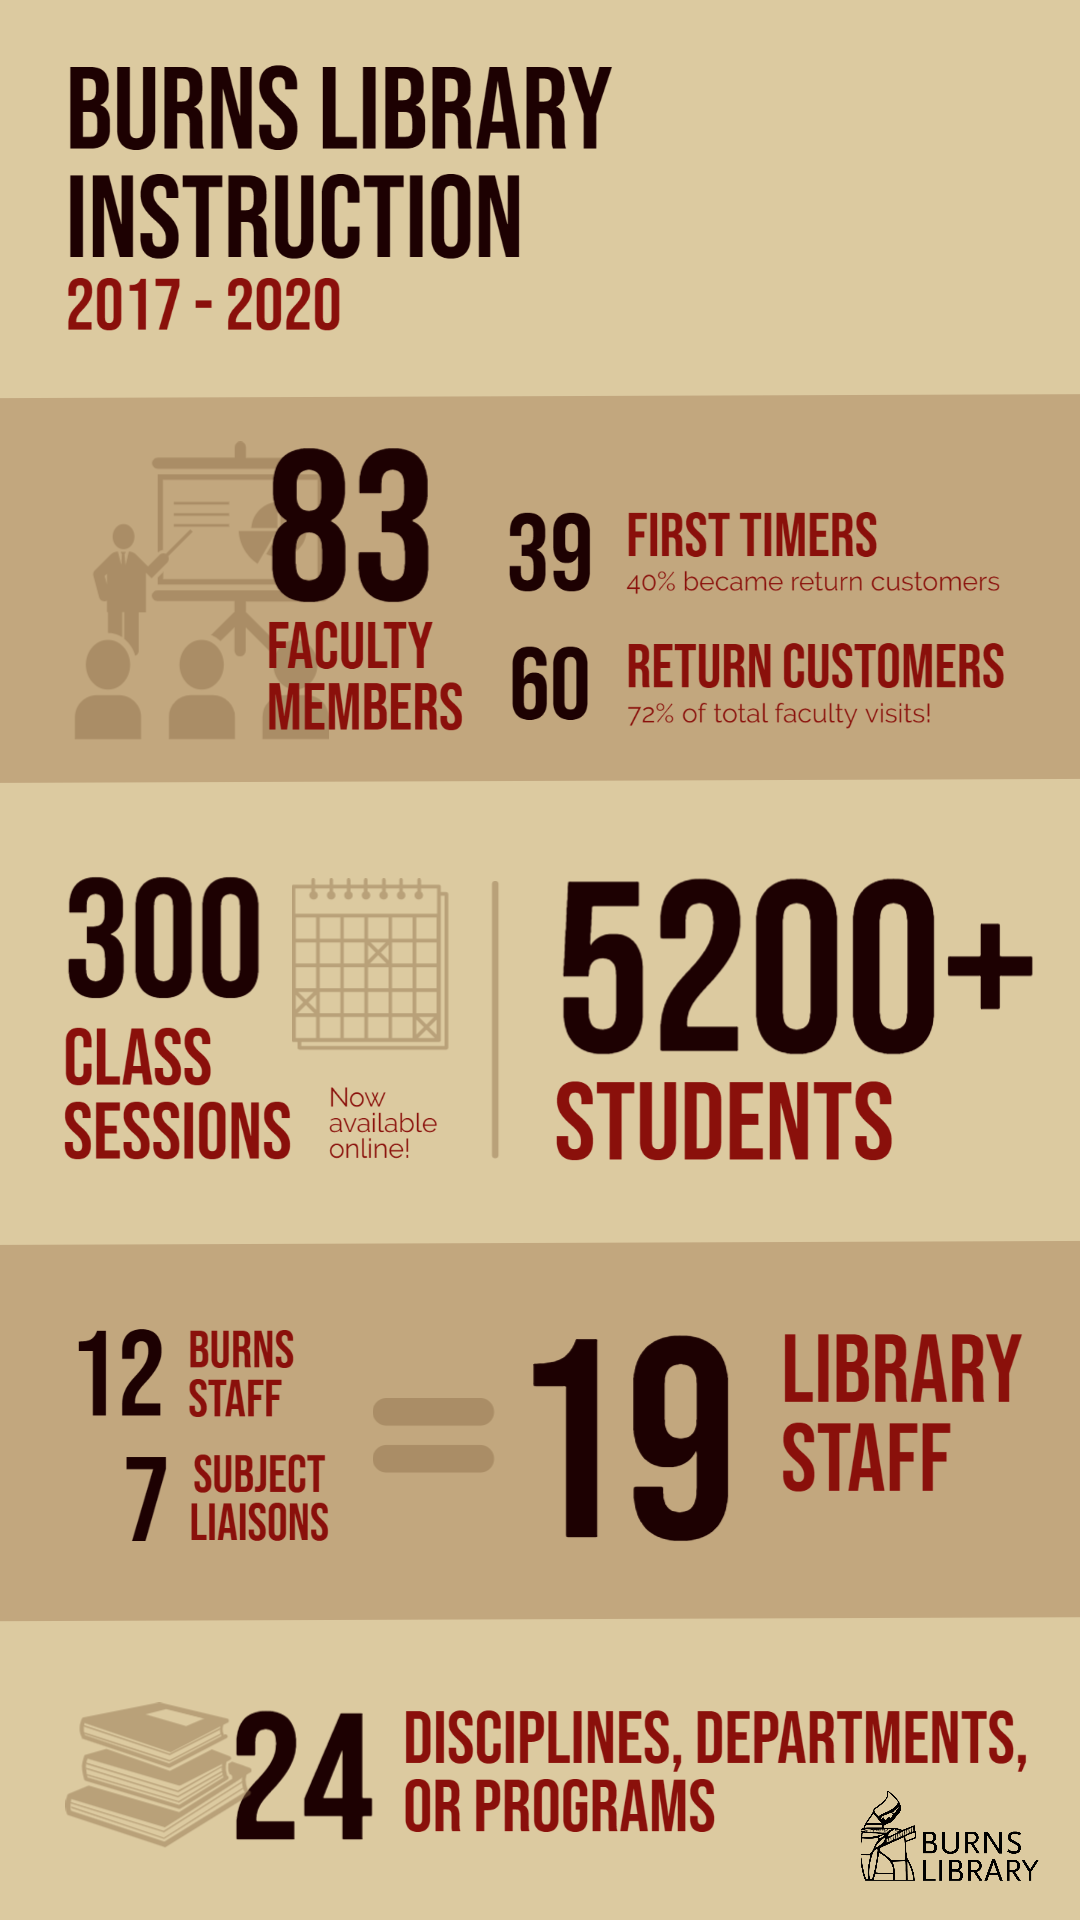 Burns Library Instruction 2017-2020. 83 Faculty members. 39 first-timers. 43% became return customers. 60 return customers. 72% of total faculty visits! 300 class sessions (now available online). 5200+ students. 12 Burns staff + 7 subject liaisons = 19 library staff. 24 disciplines, departments, or programs